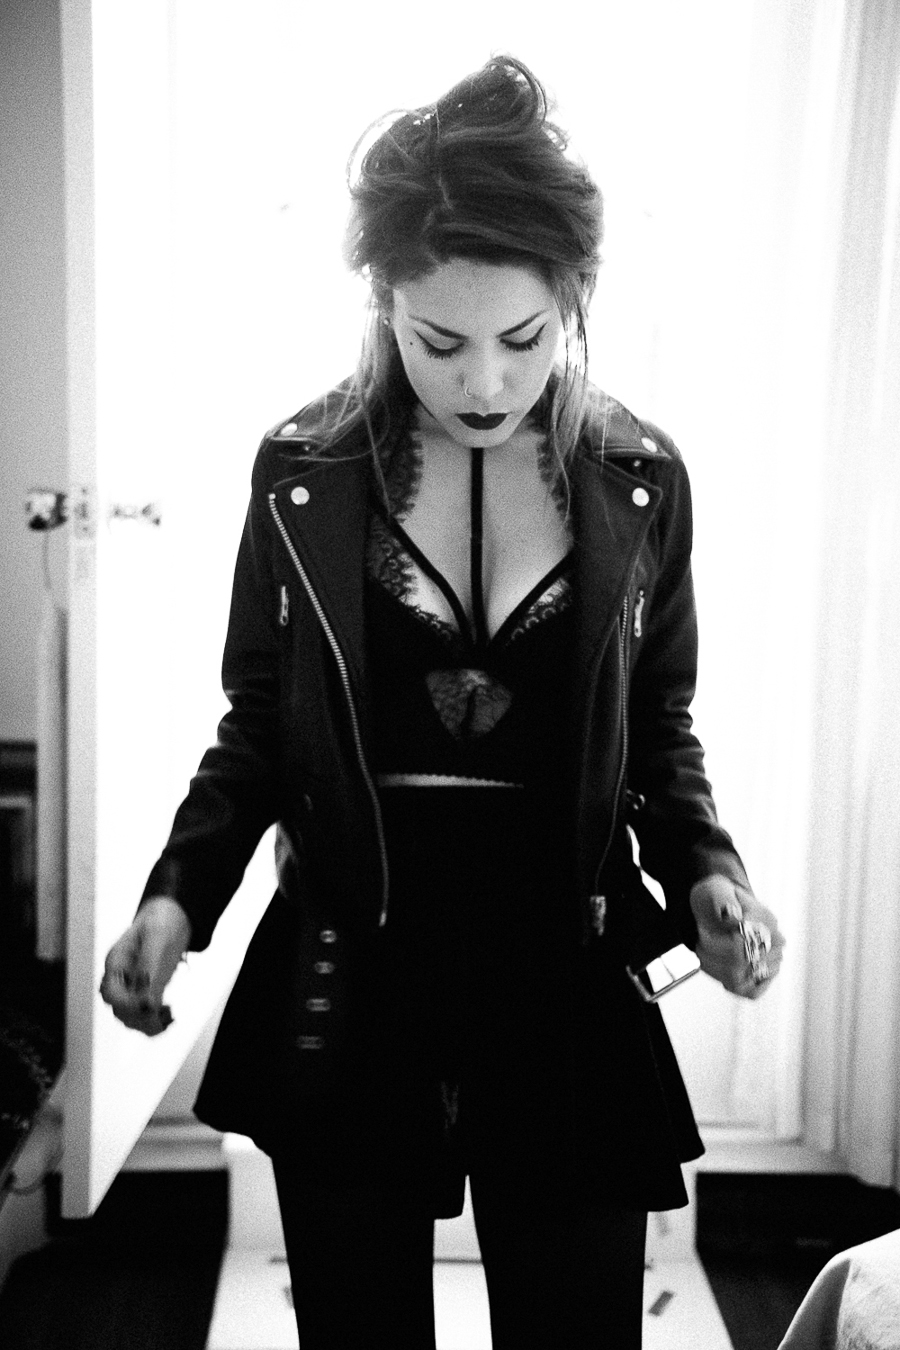 Le Happy wearing Nasty Gal biker jacket and lace corset